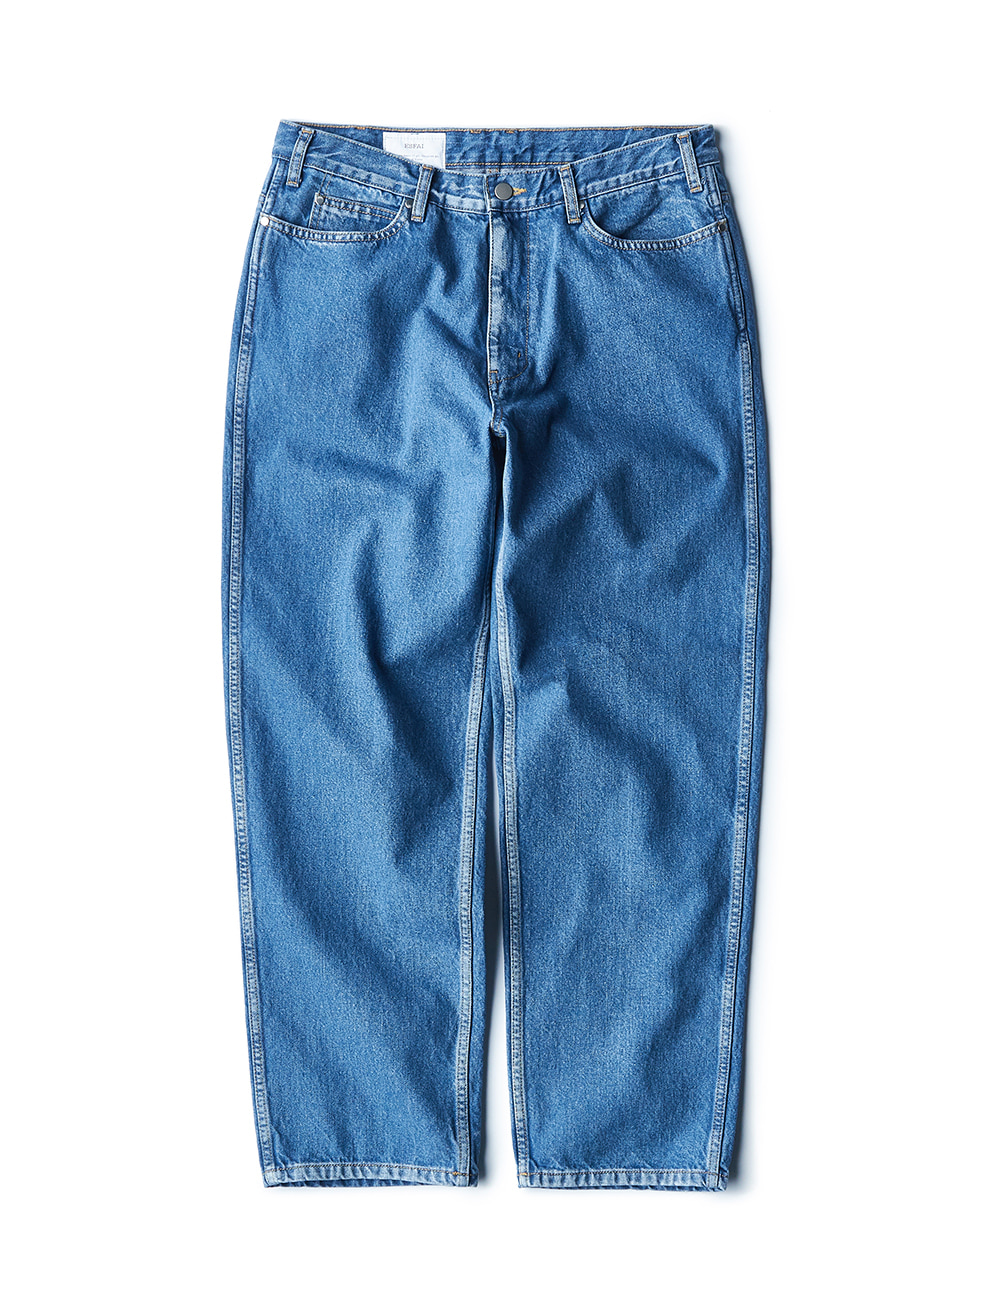 [ESFAI] dj901 Jeans (Washing Blue)